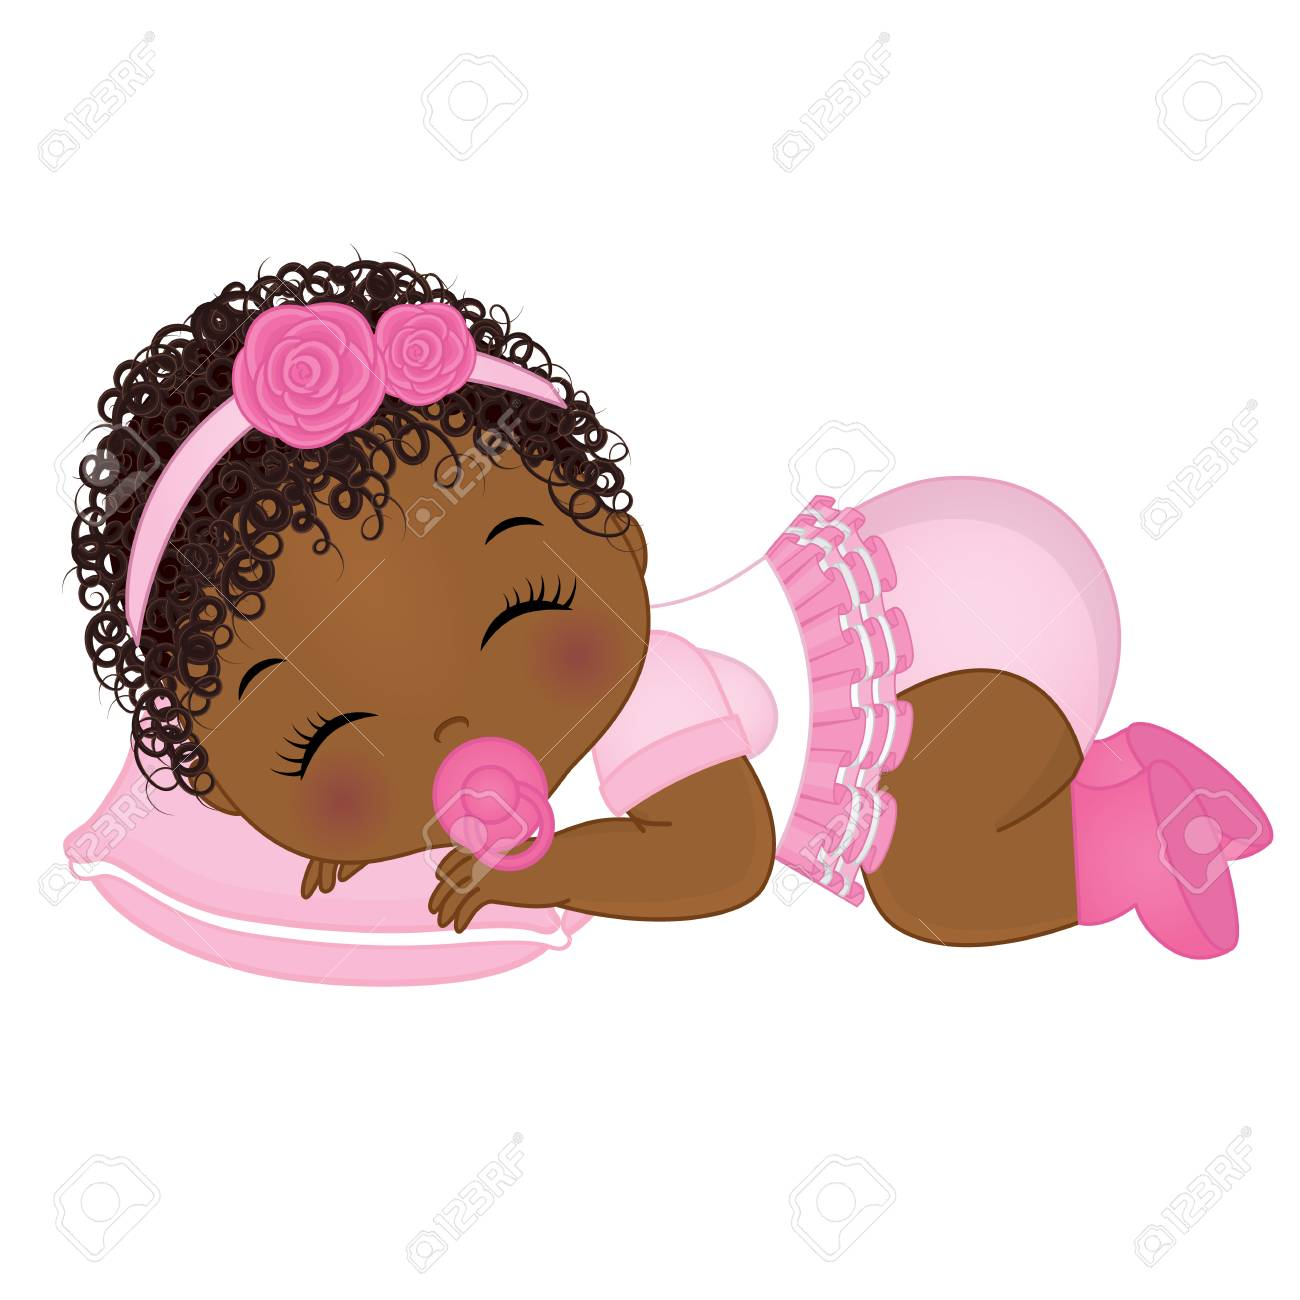 African american baby clipart 1 » Clipart Station.